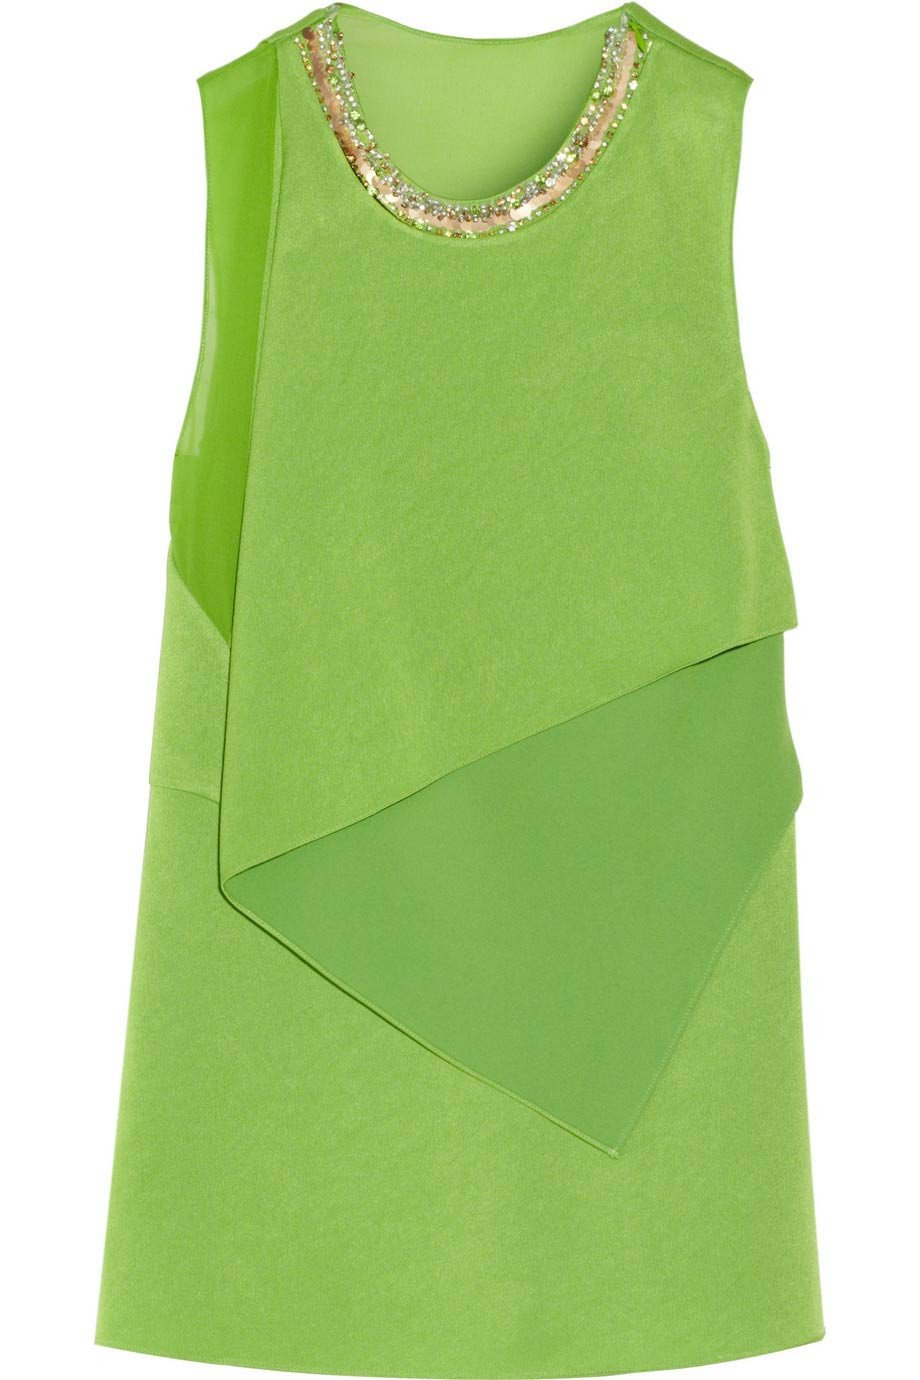 3.1 Phillip Lim Embellished Green Crepe + Silk Top / Sz 2-Style Therapy